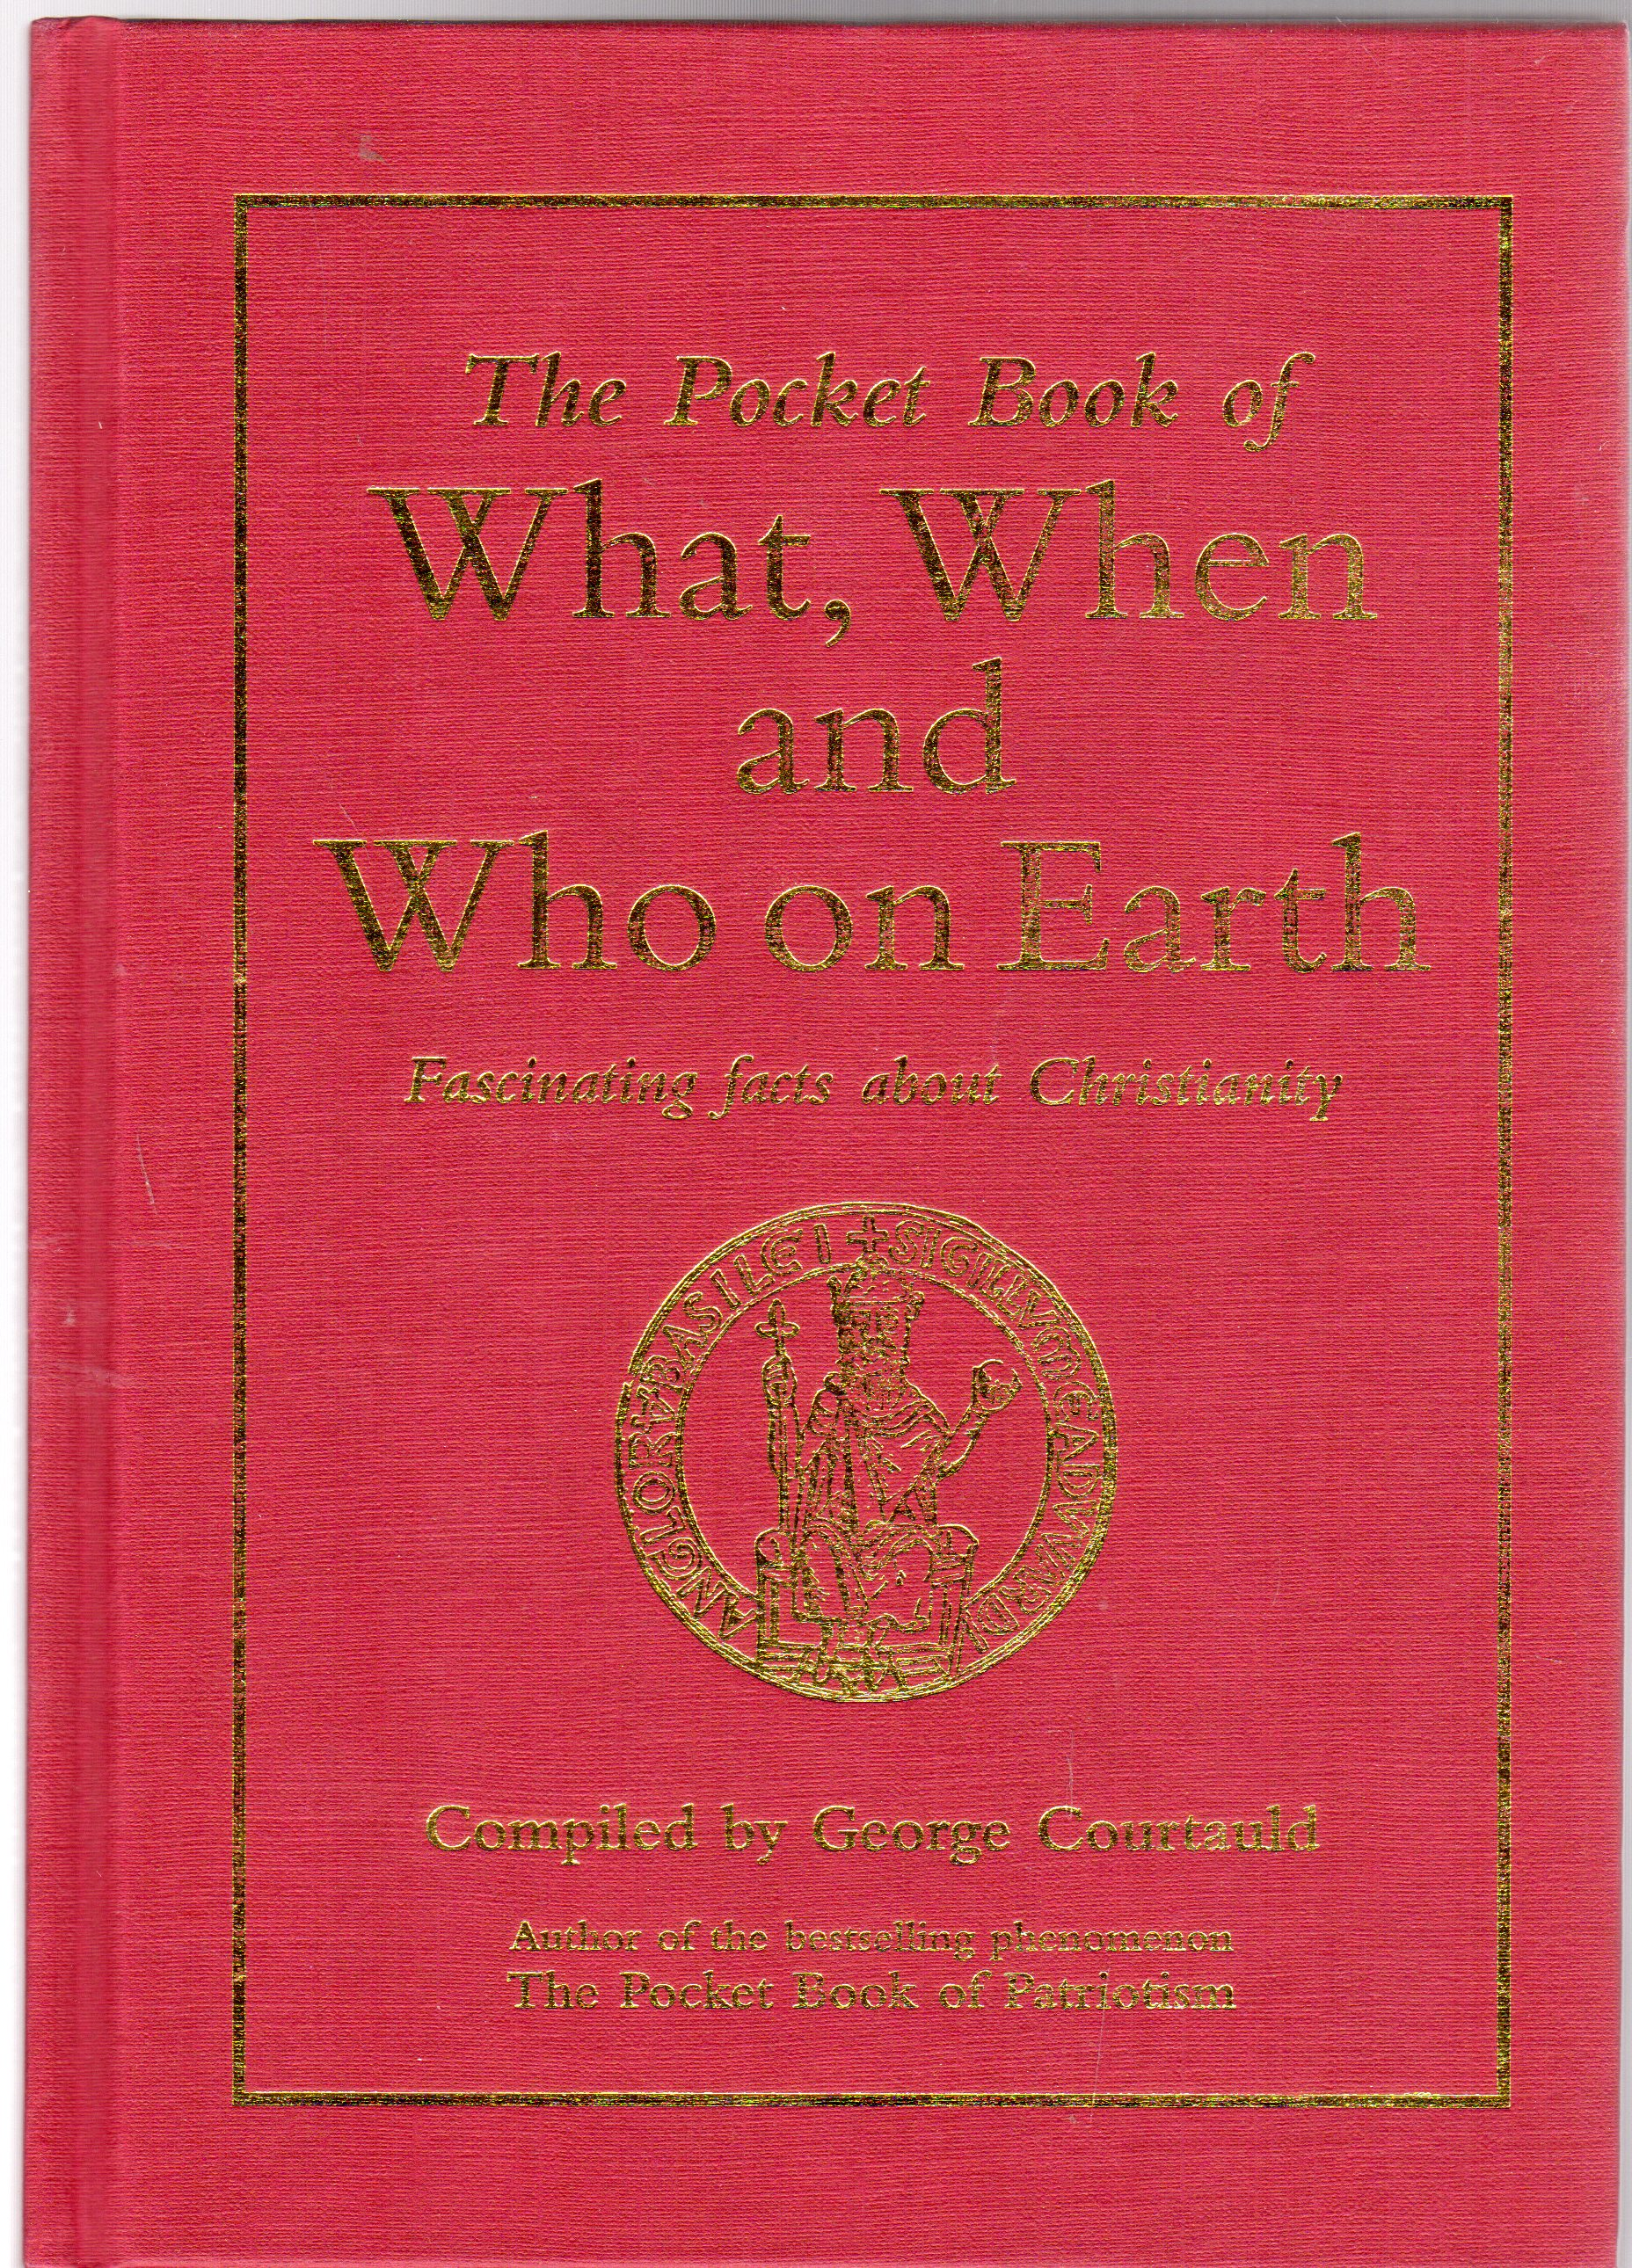 Image for The Pocket Book of What, When and Who on Earth   (SIGNED COPY)